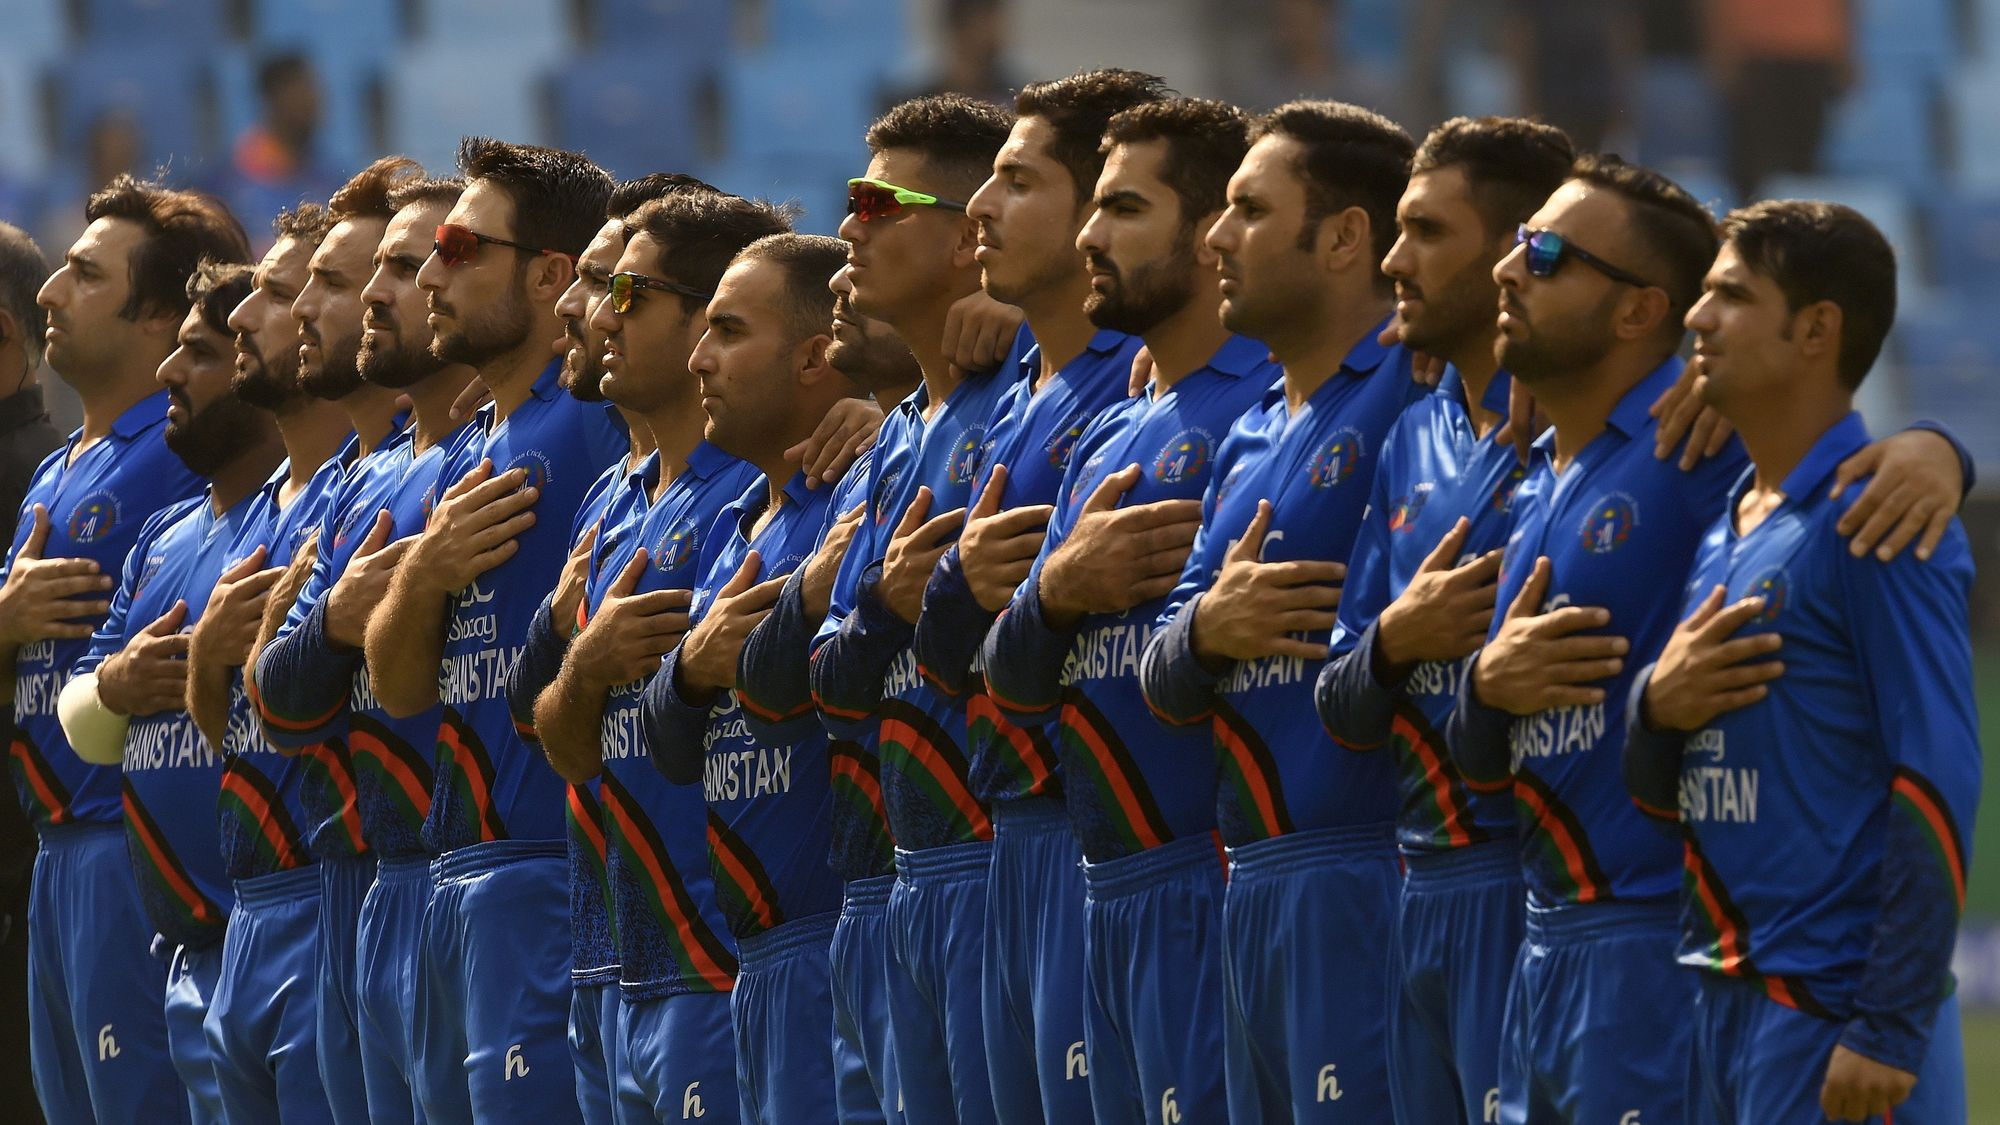 Five takeaways from Afghanistan's CWC19 squad